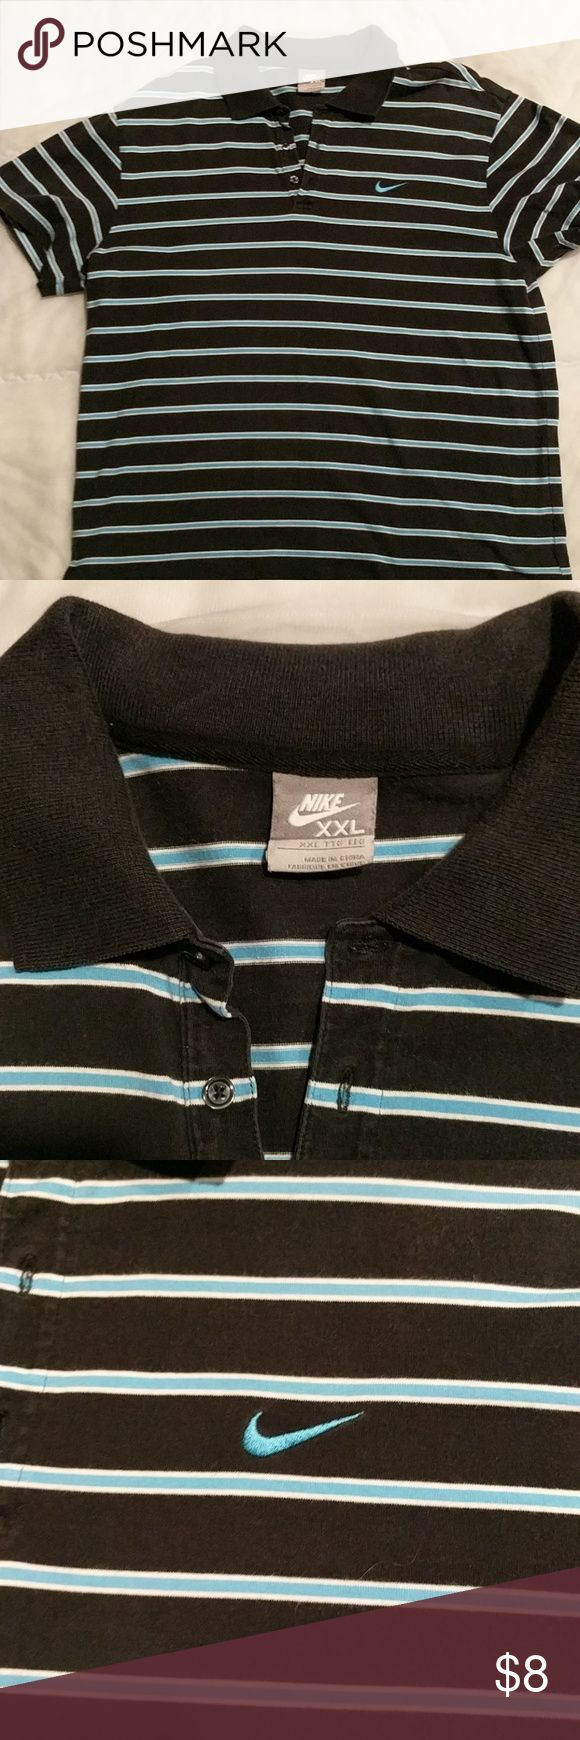 Nike polo shirts striped size XL to XXL great cond Nike polo shirt striped extra large to XXL. Great condition. Triple striped black with white and light blue stripes Nike Shirts Polos